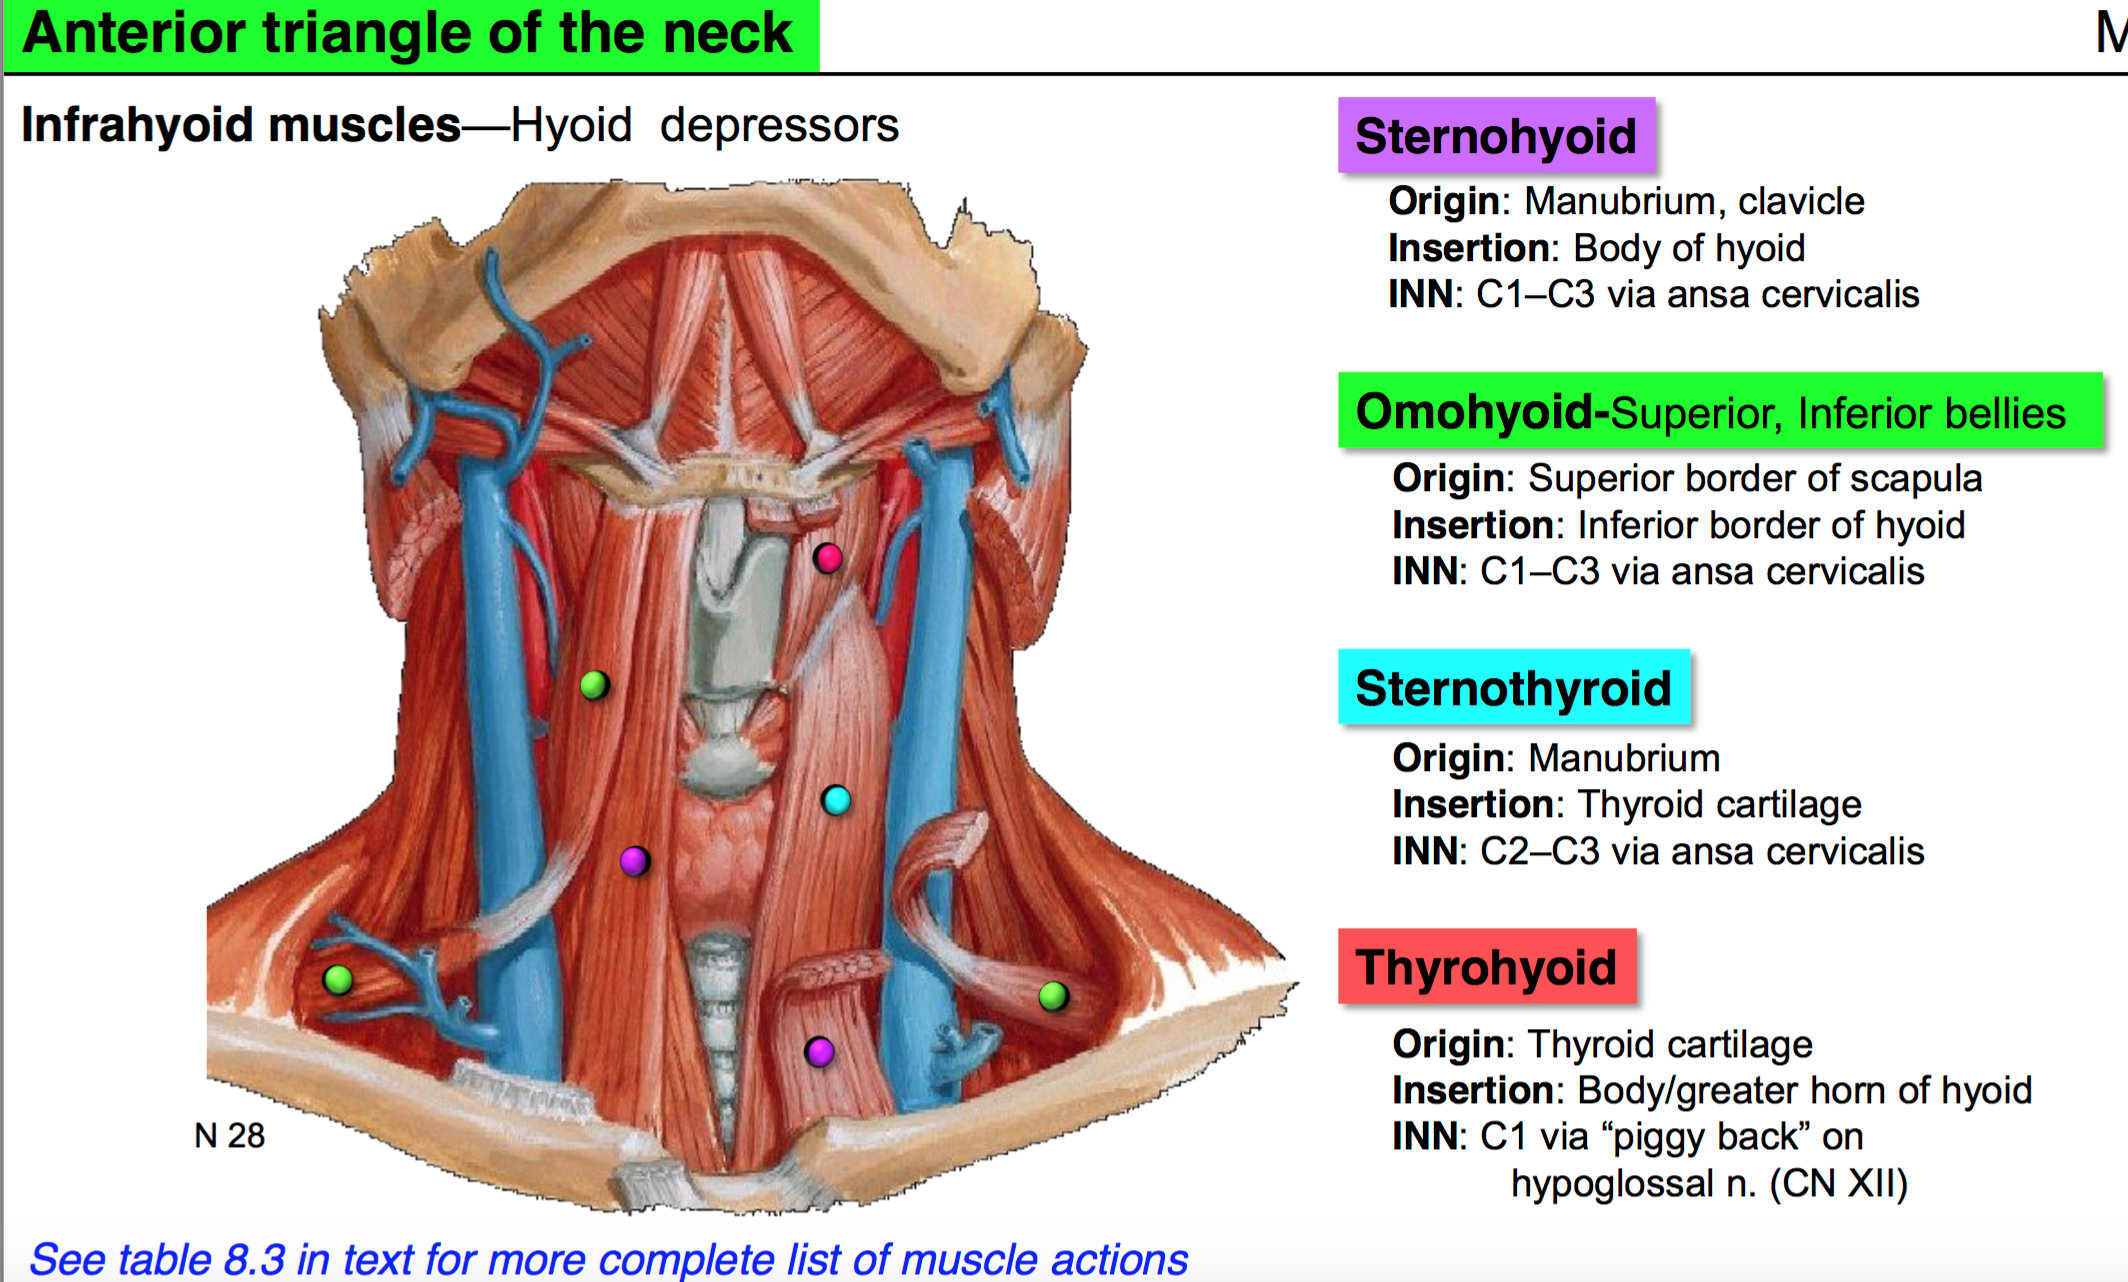 08. Anatomy G53 Neck I (Terms from Anatomy G53 Neck I LordFred ...